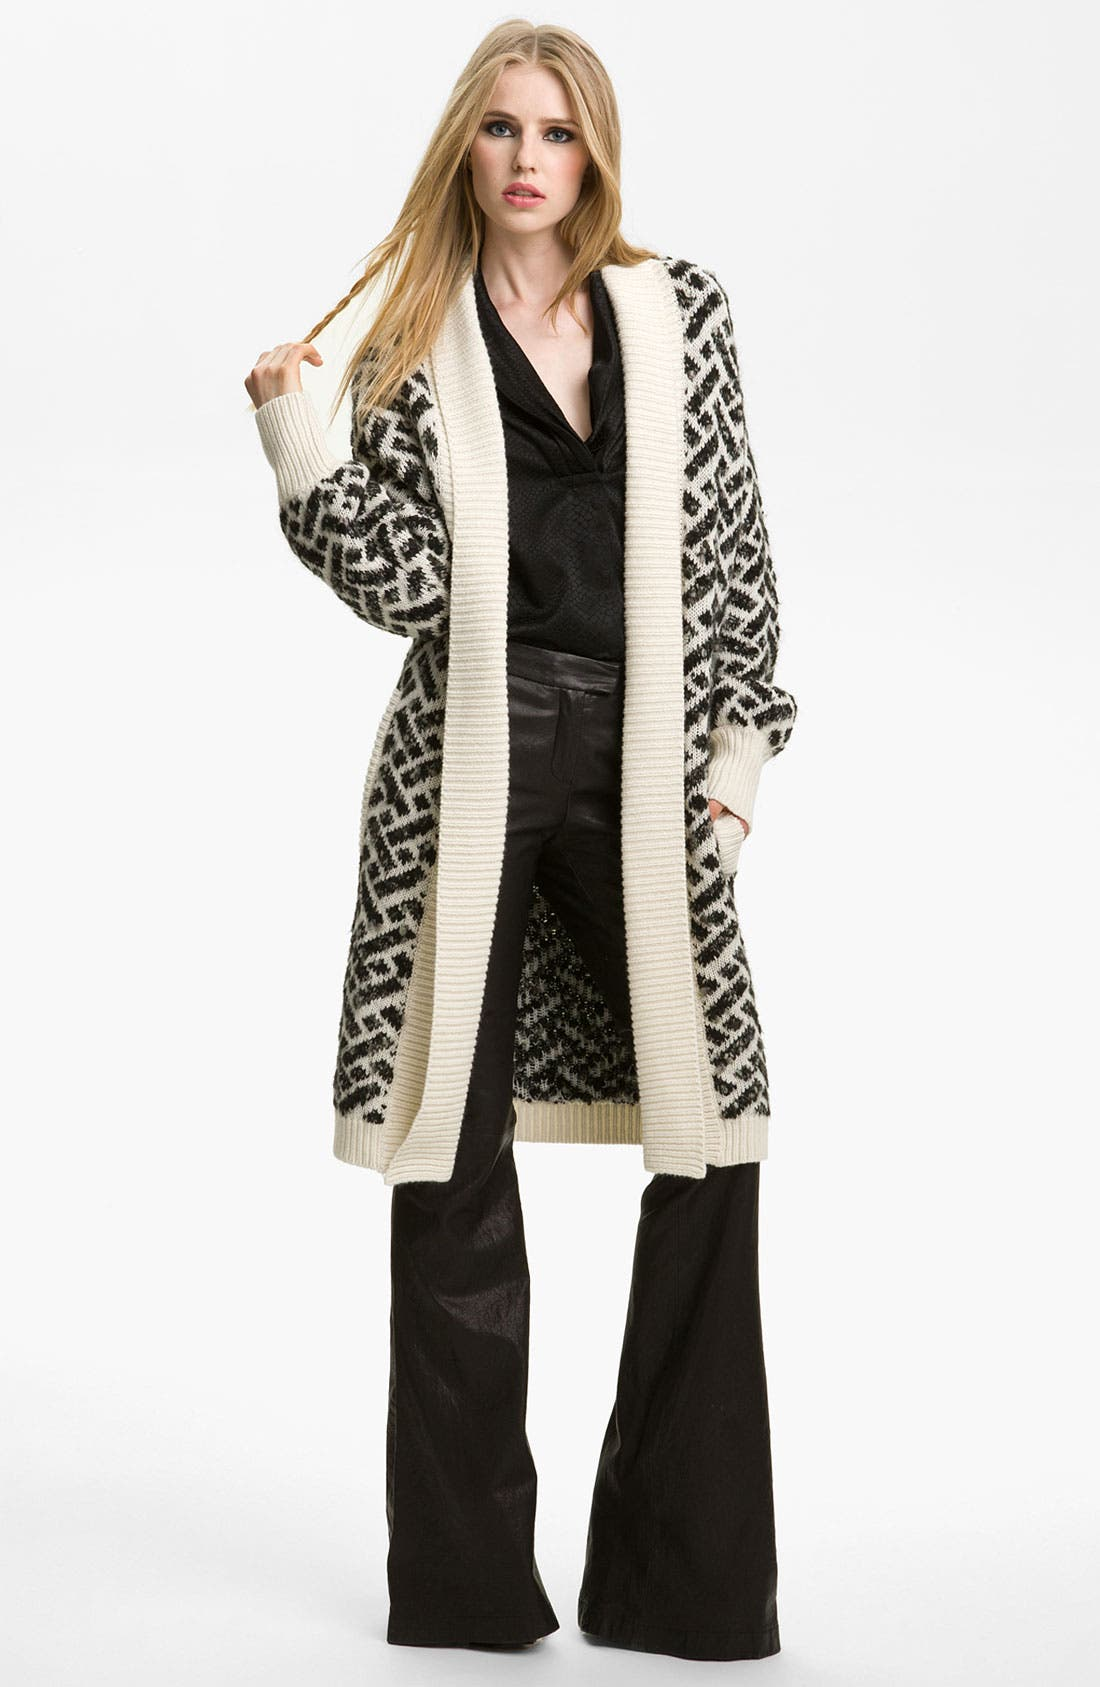 Alternate Image 1 Selected - Rachel Zoe 'Nikki' Jacquard Cardigan